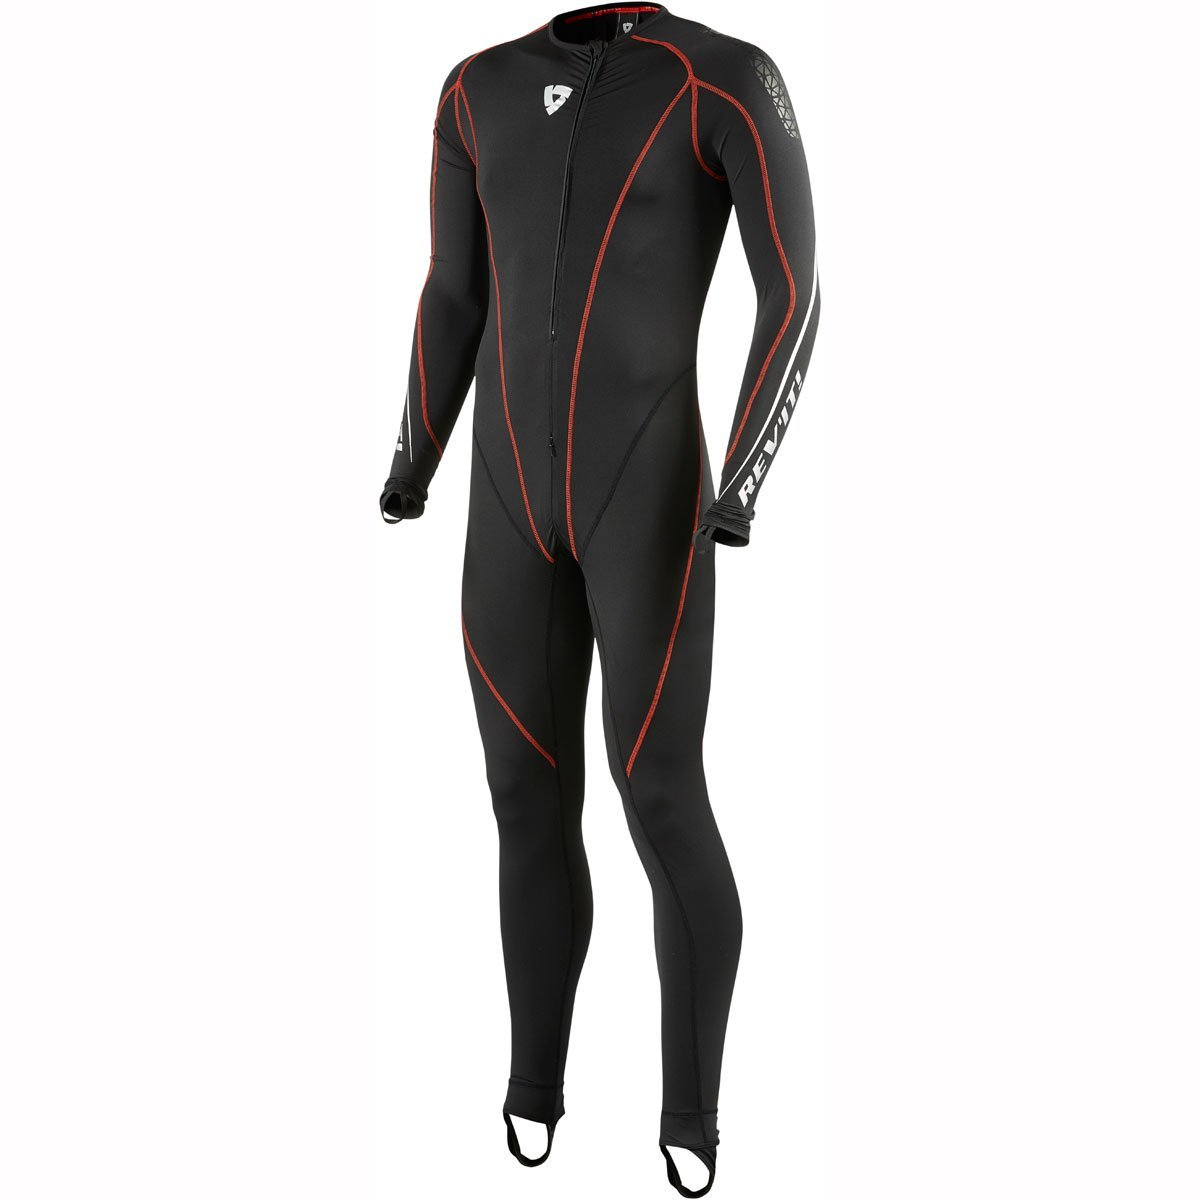 REV'IT Sottotuta Sportiva Excellerator Undersuit Moto (Xl, Nero) REV' IT FTU301_XL